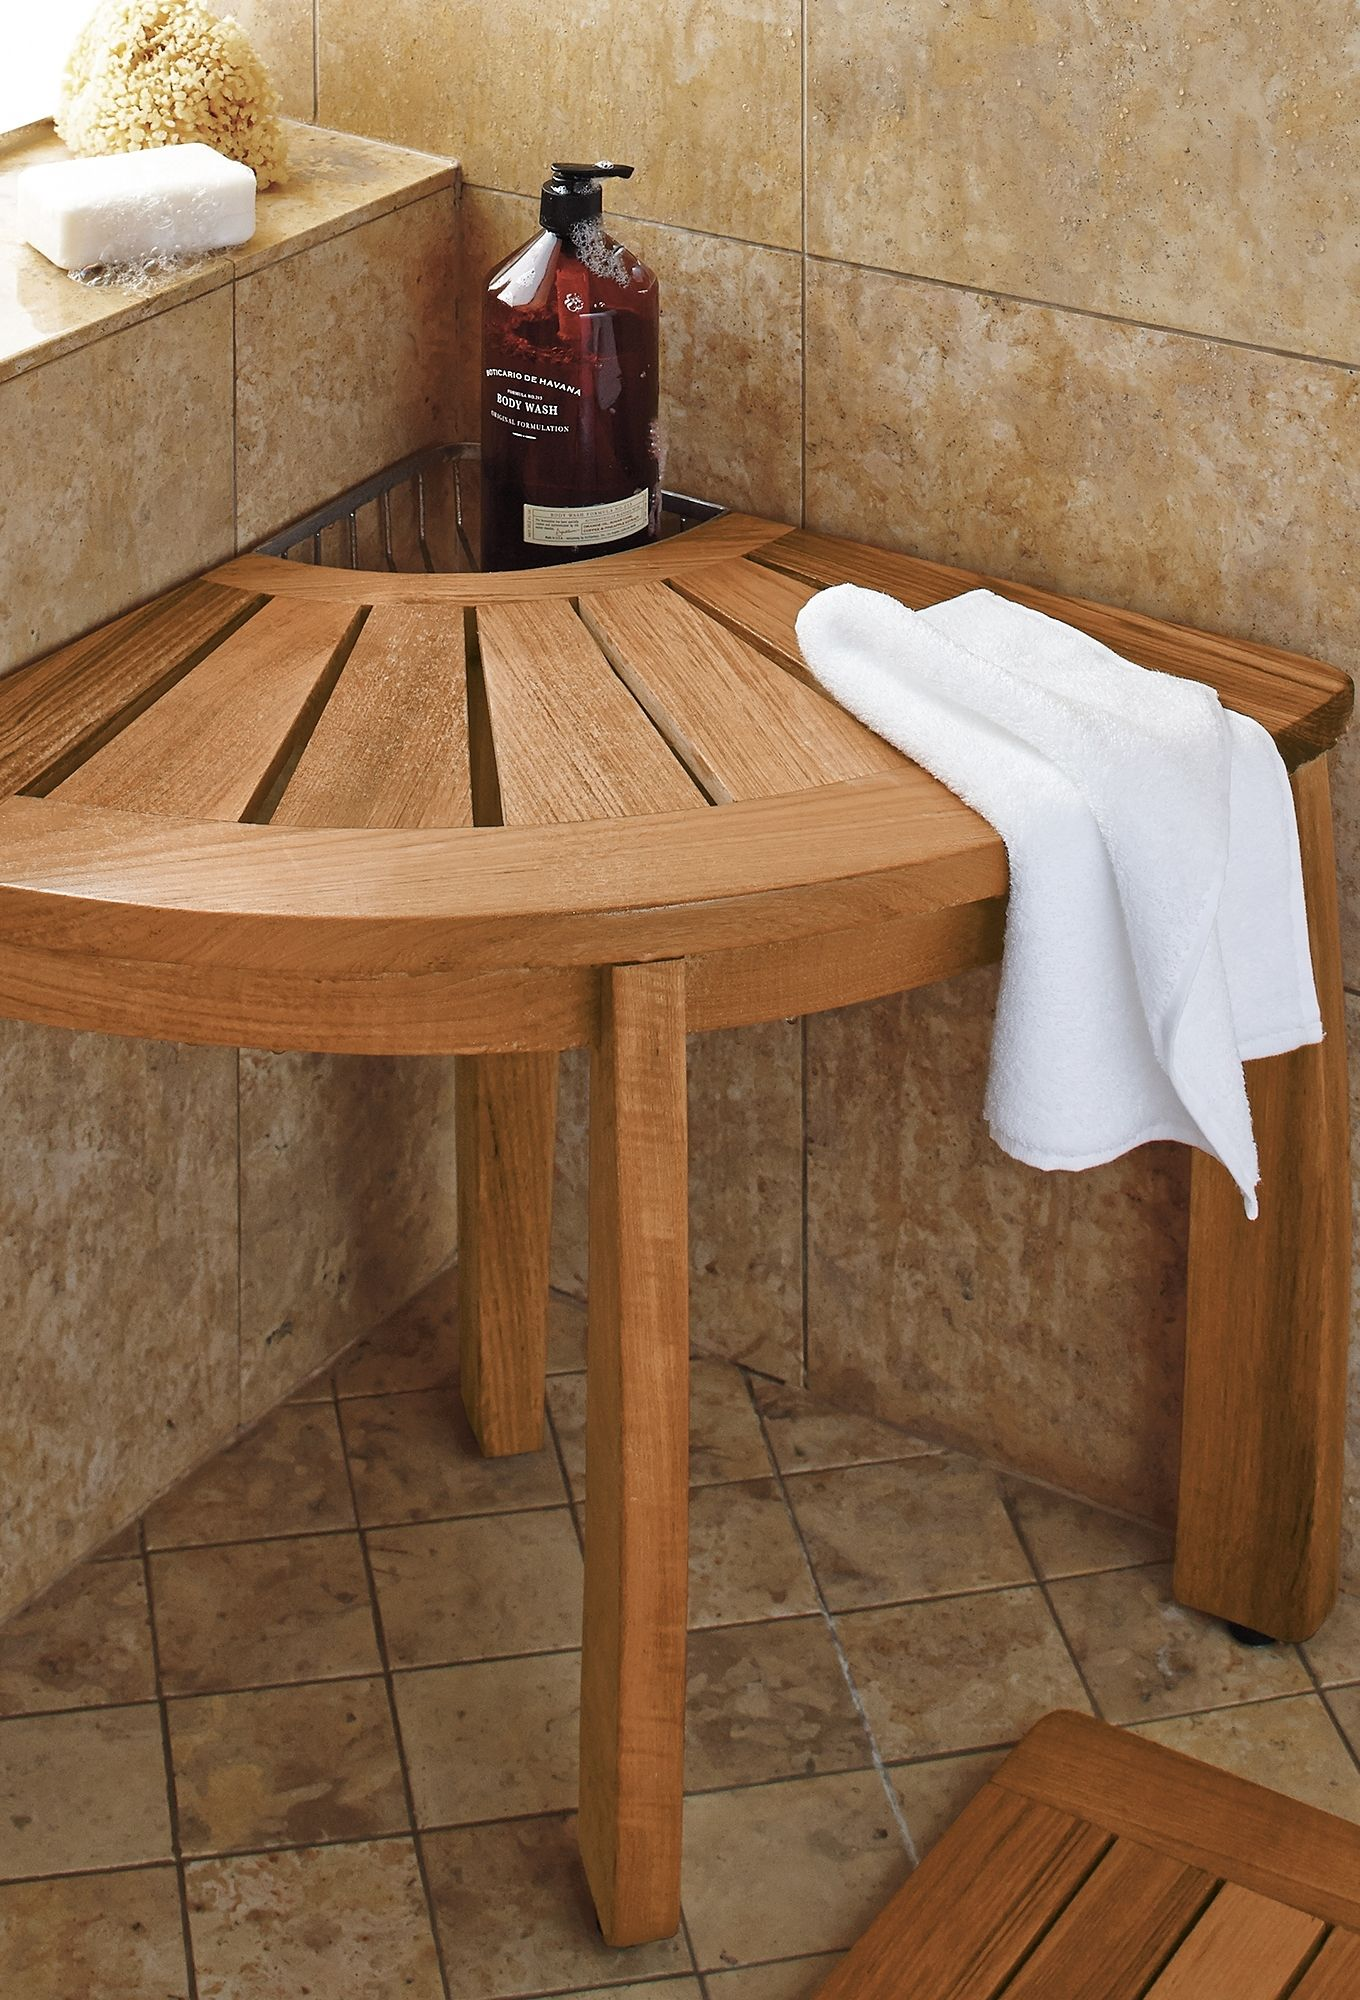 Our Teak Corner Shower Seat with Basket provides fort and